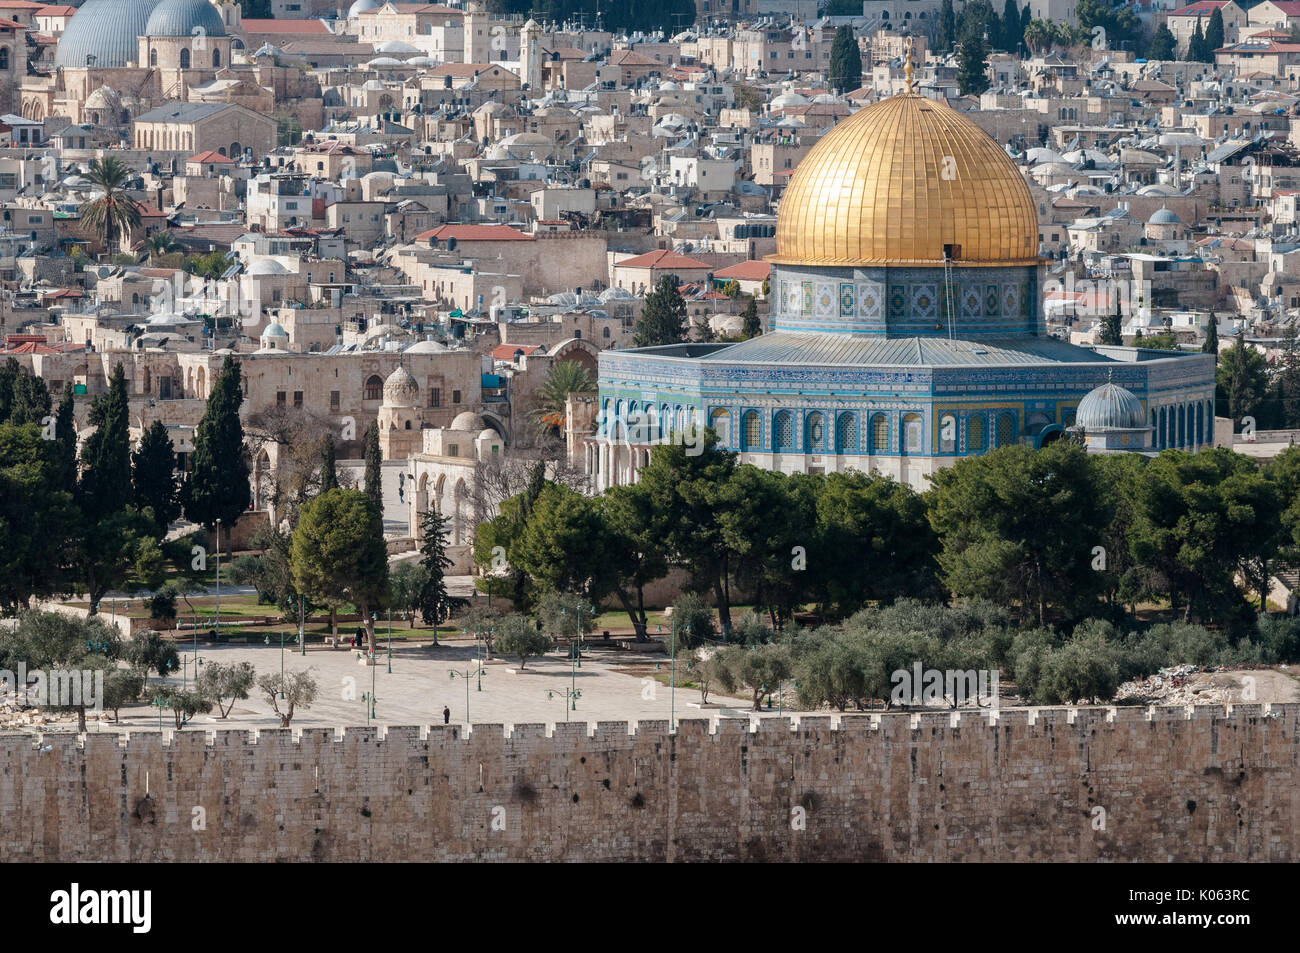 The Dome of the Rock on Temple Mount in Jerusalem, Israel, the holy site of the three monoteistic religions: Judaism, Christianity and Islam. - Stock Image